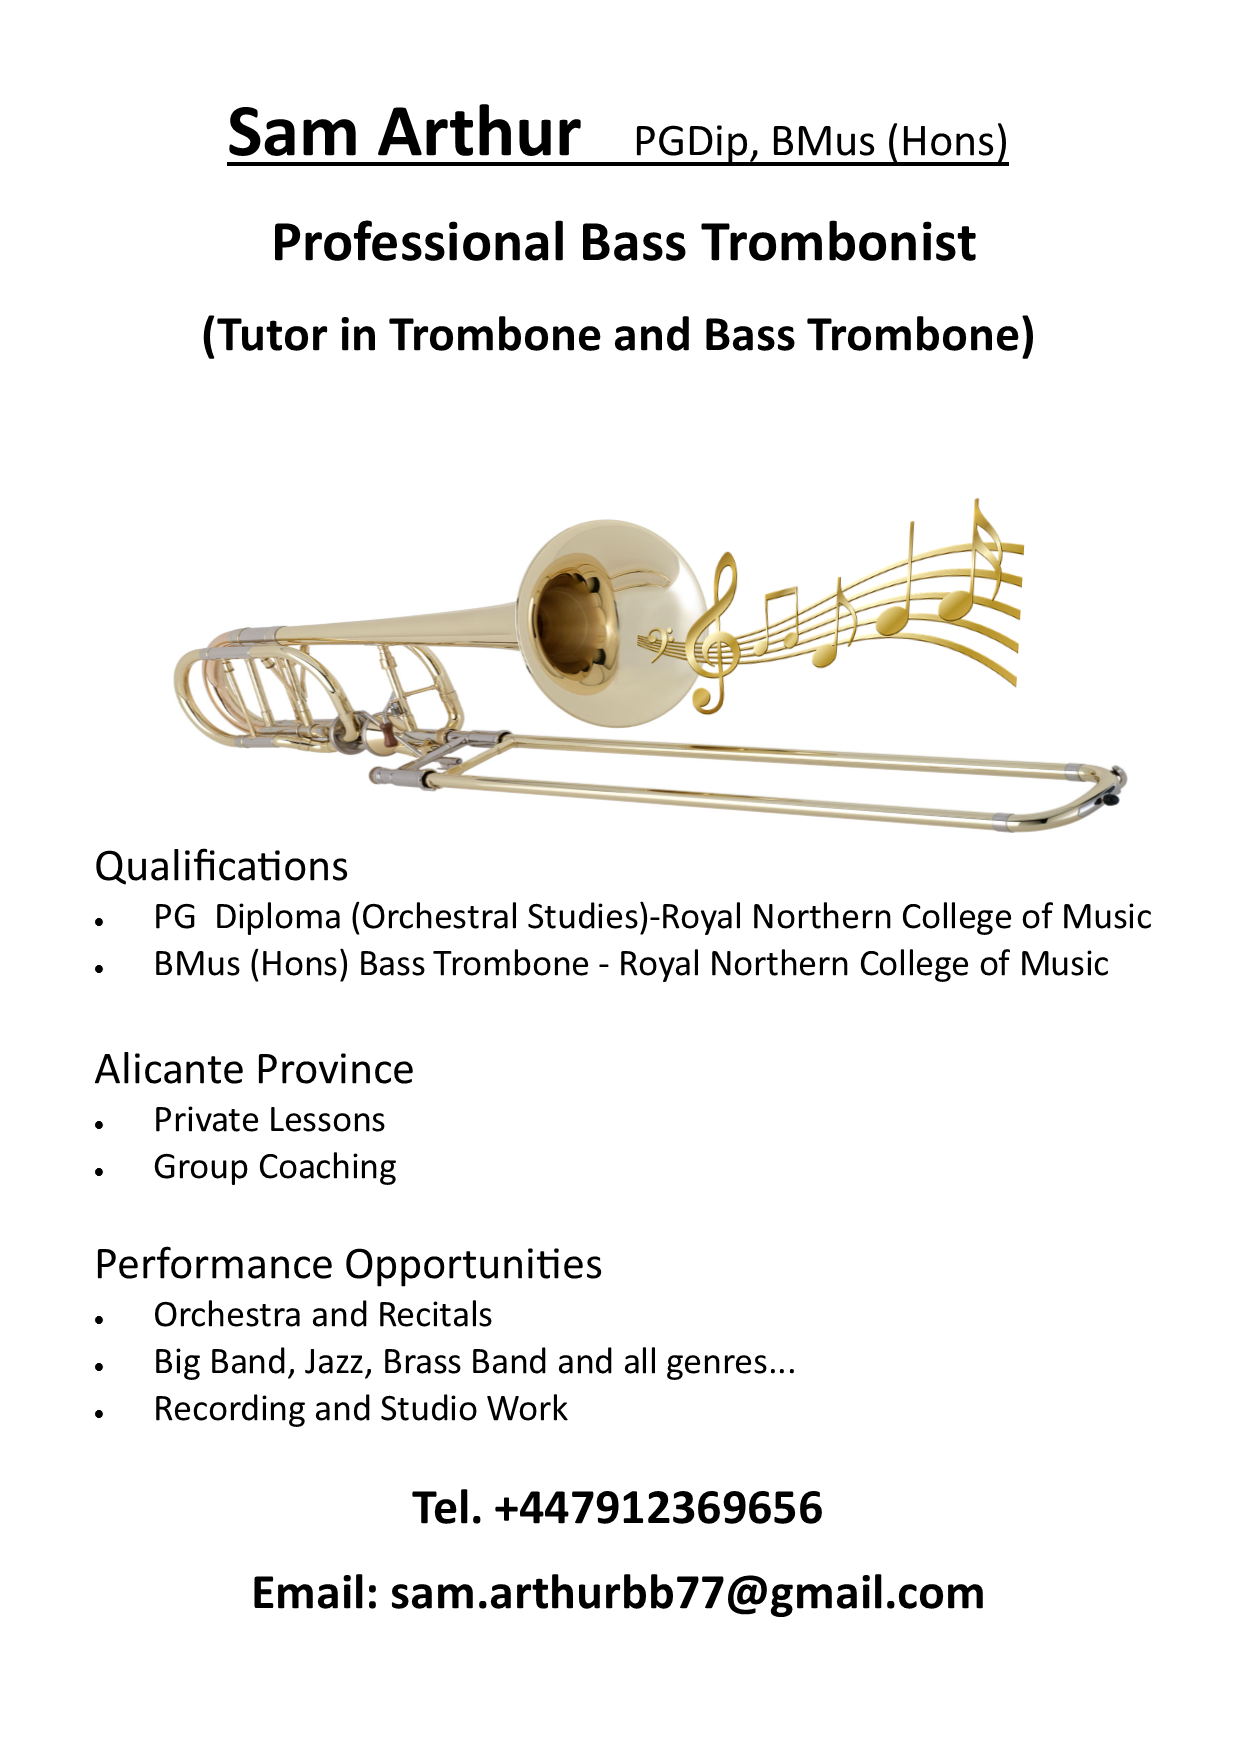 RBL Band welcomes International trombonist